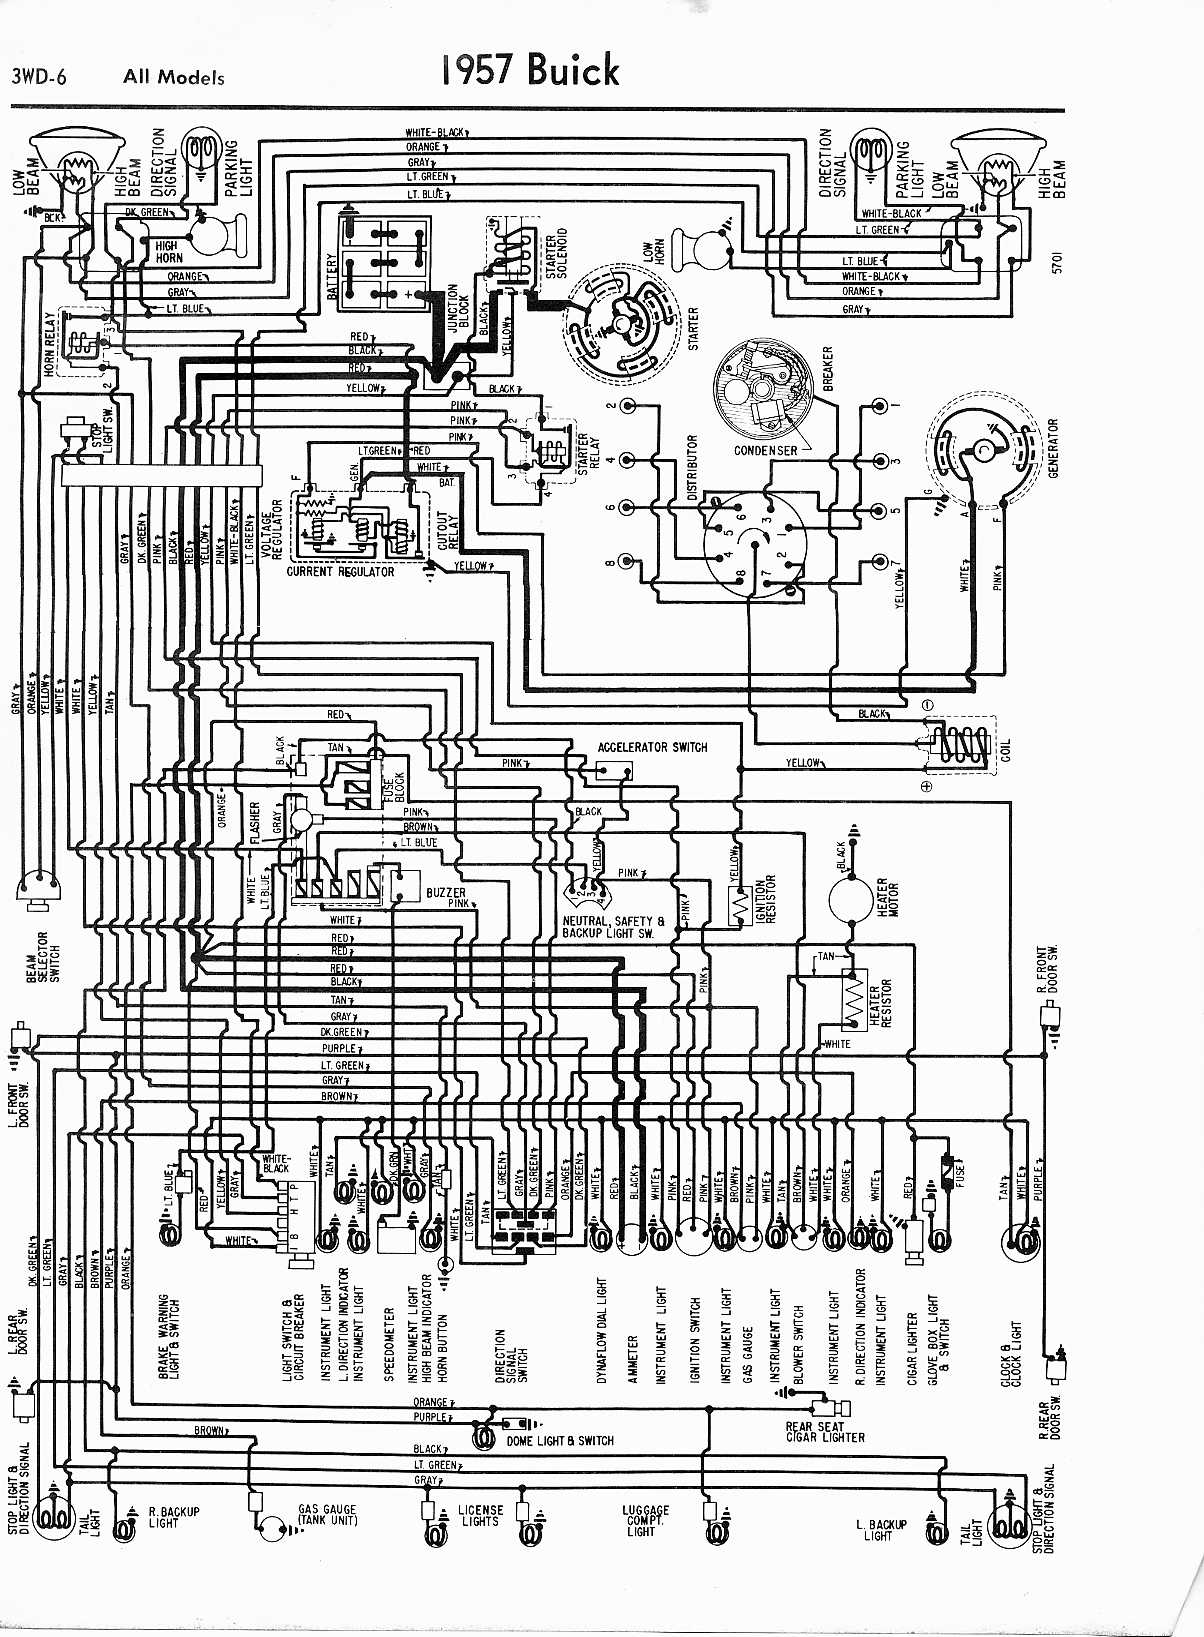 1973 Buick Lesabre Fuse Box Worksheet And Wiring Diagram 94 1977 Electra Diagrams Rh Bwhw Michelstadt De Blower Motor 1994 Century